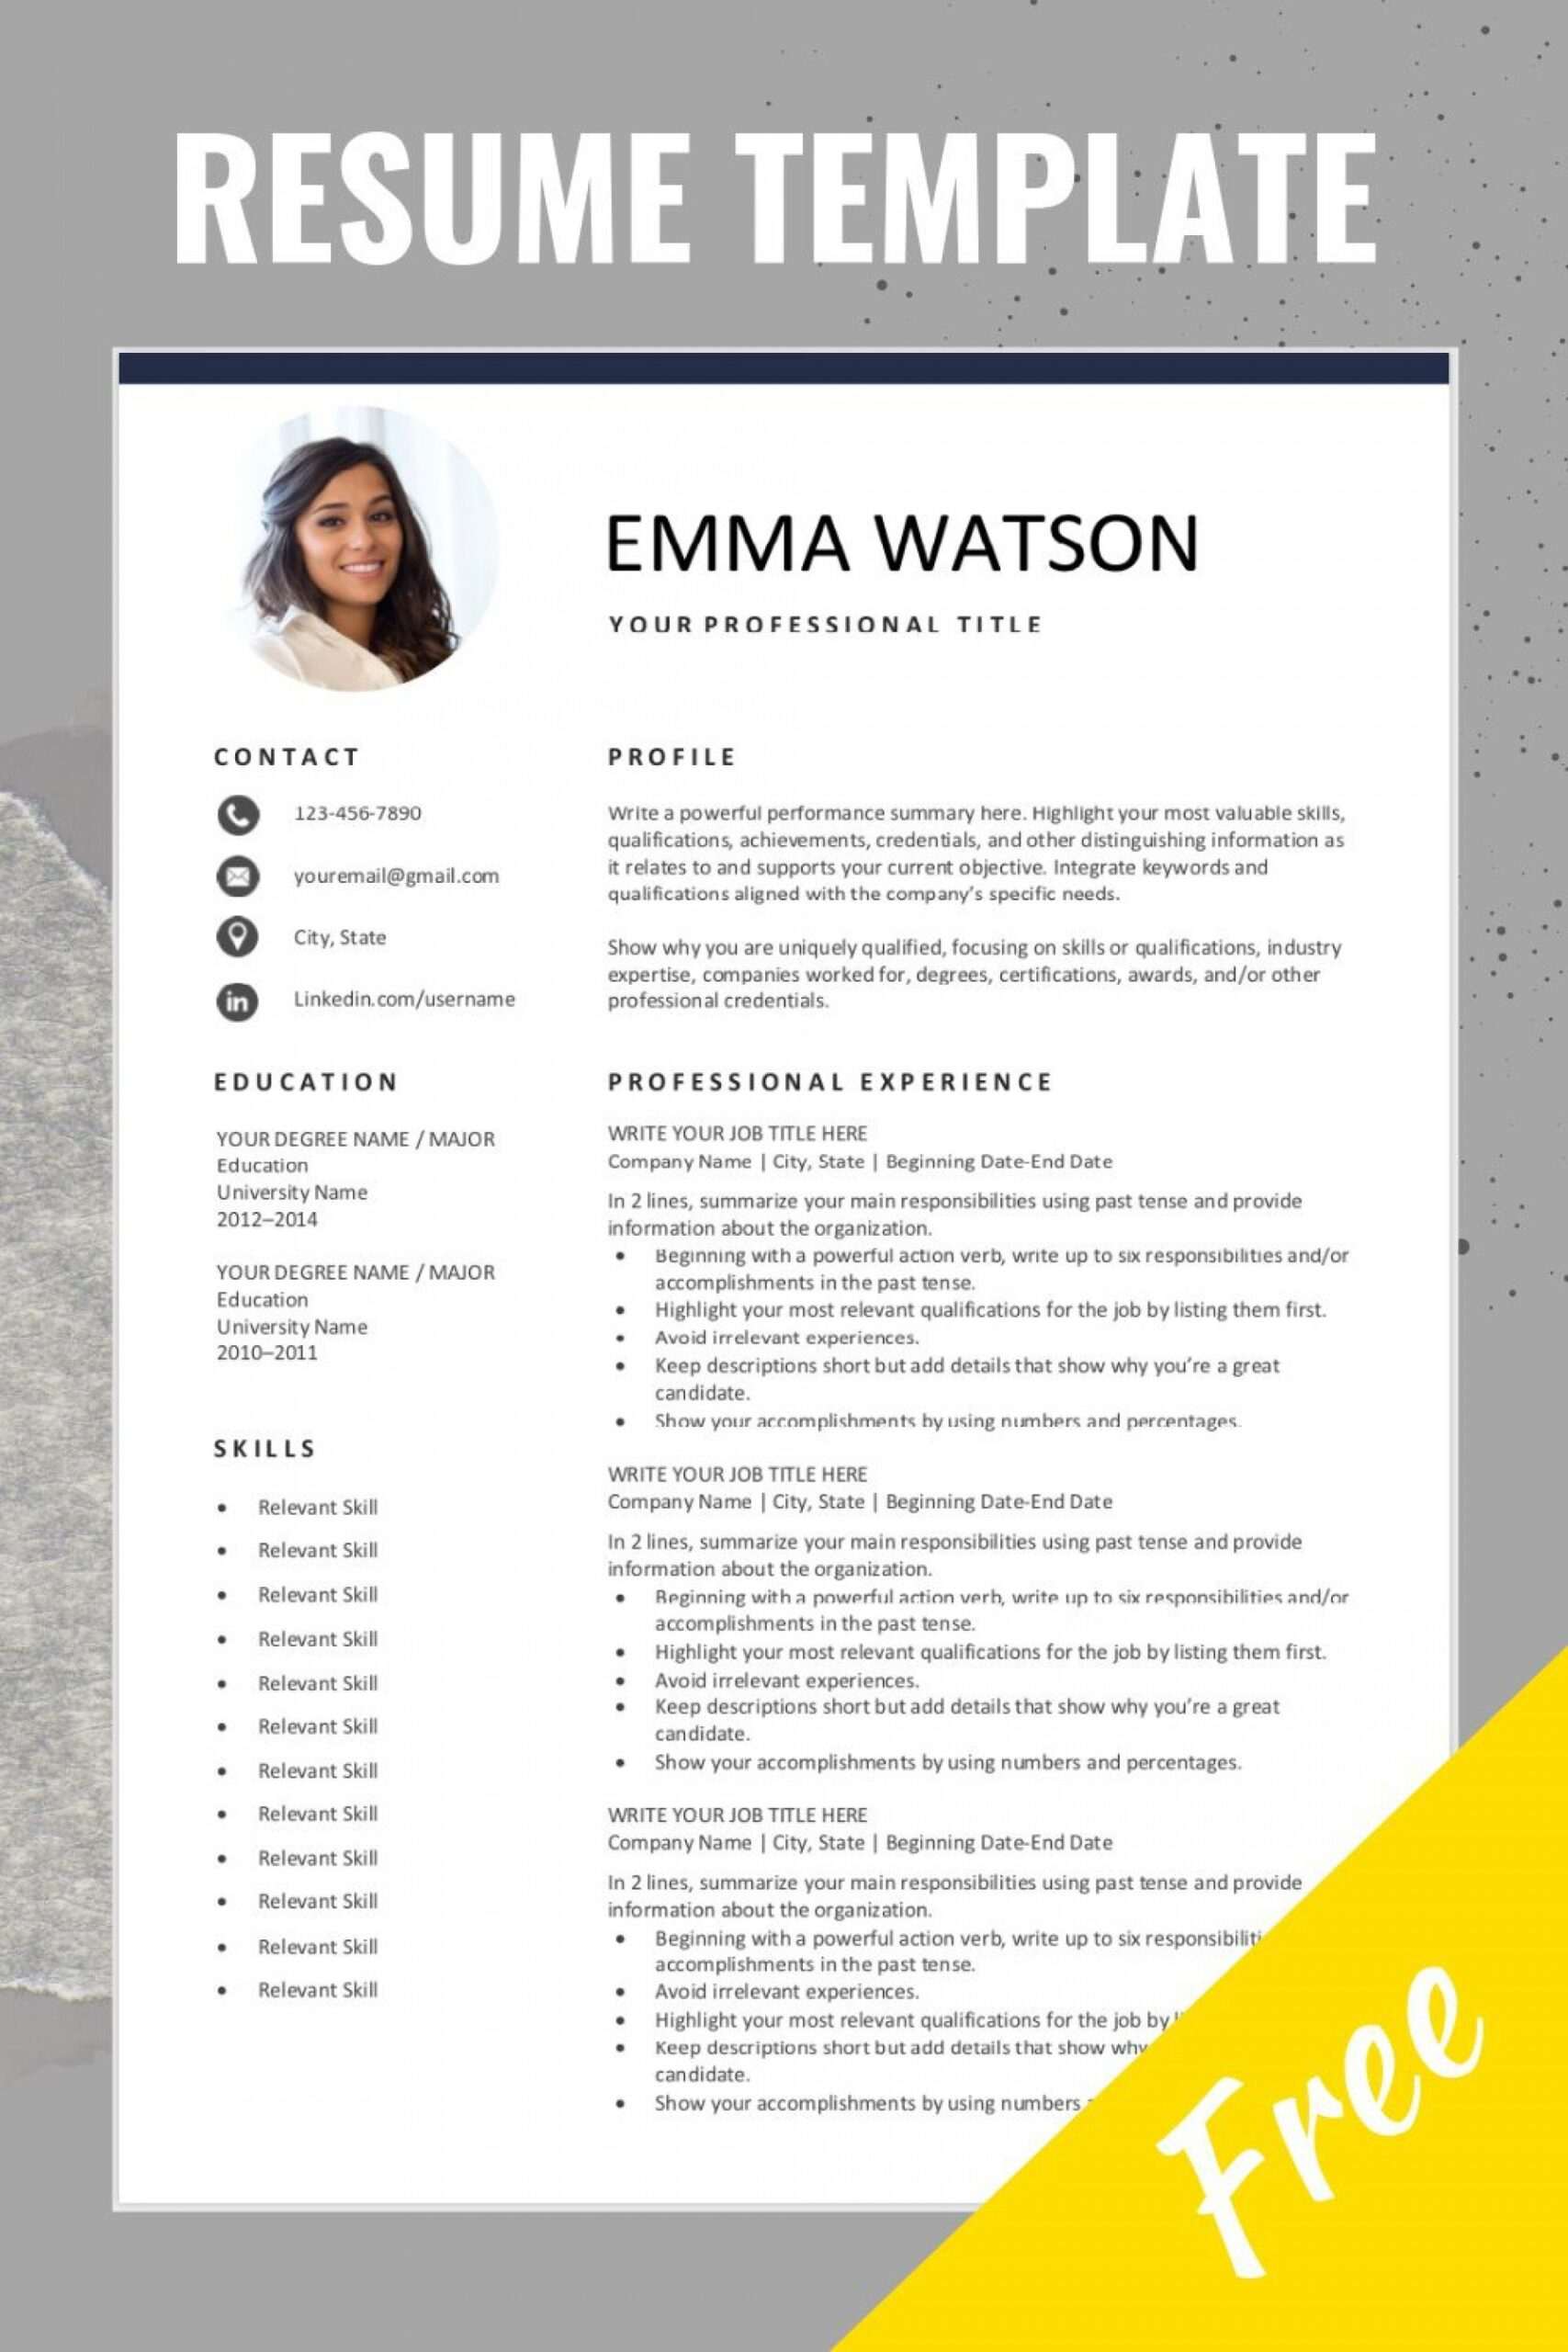 free resume template microsoft word addictionary outlines exceptional templates two Resume Free Resume Outlines Microsoft Word